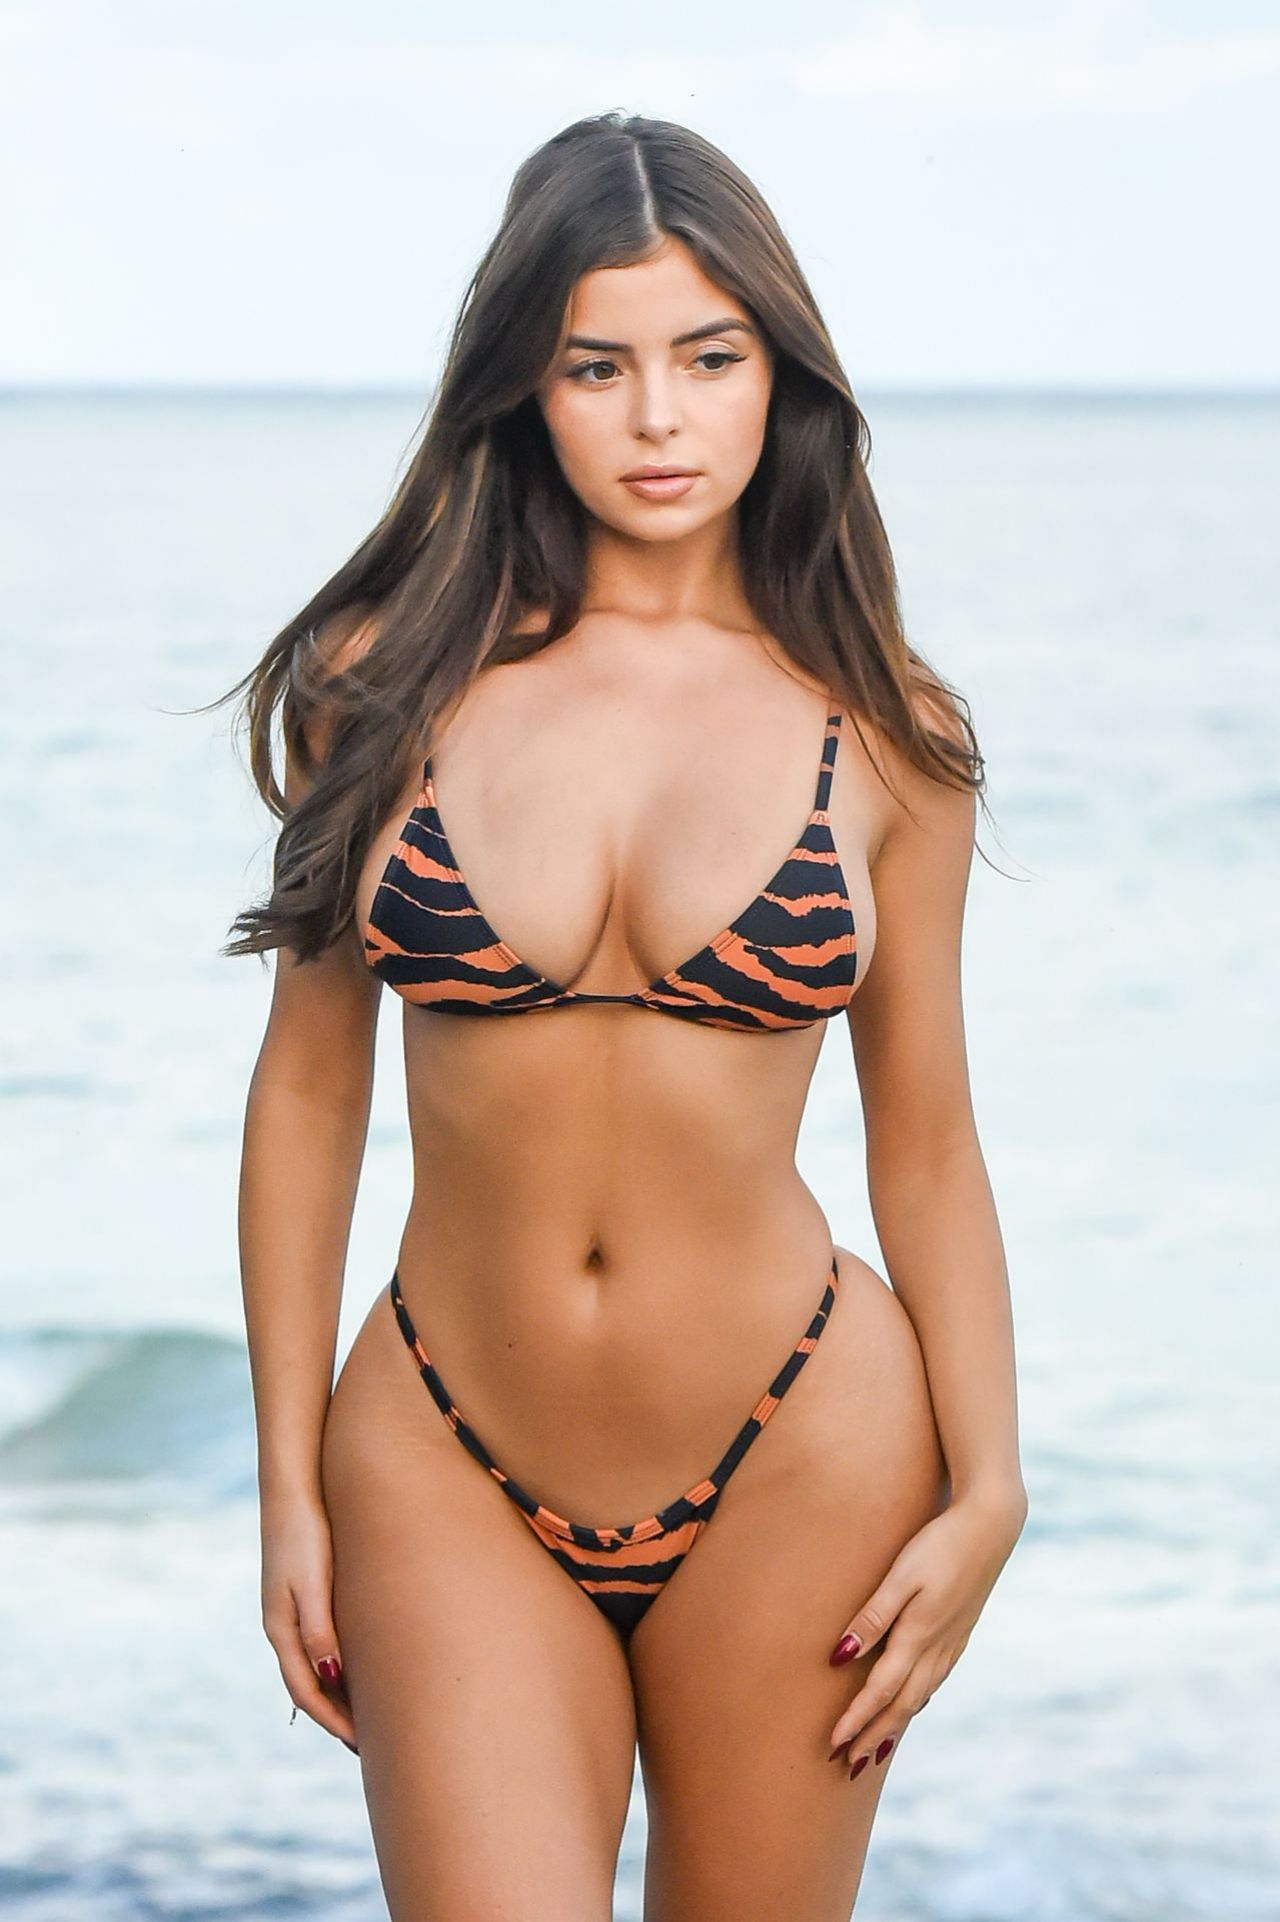 cleavage Photos Demi Rose naked photo 2017